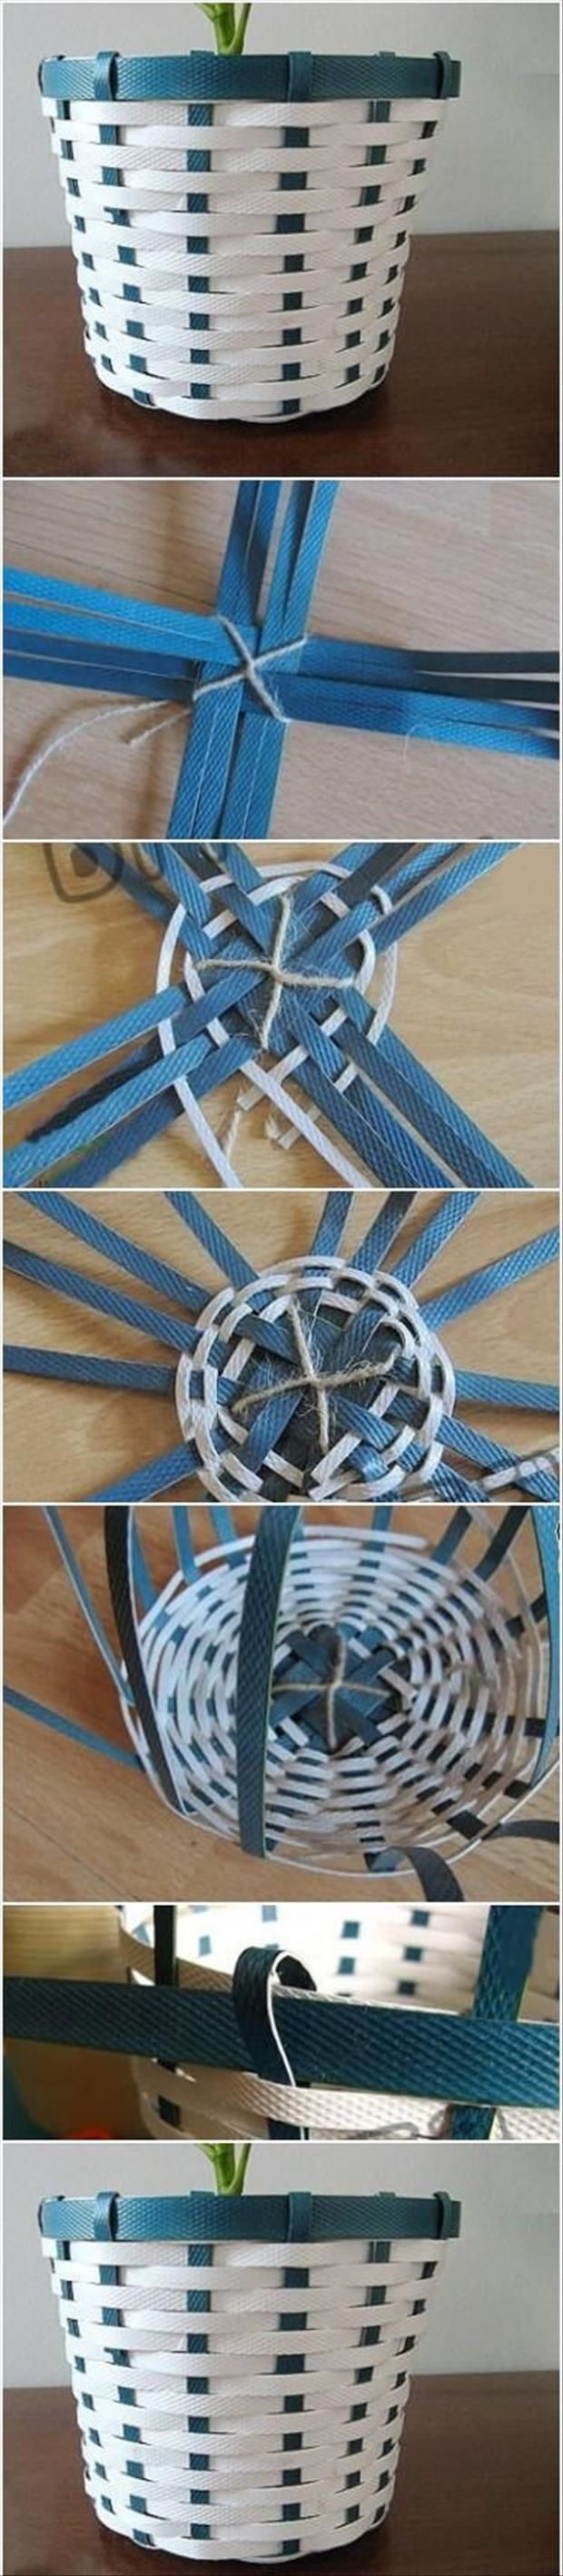 Simple Ideas That Are Borderline Crafty – 38 Pics: